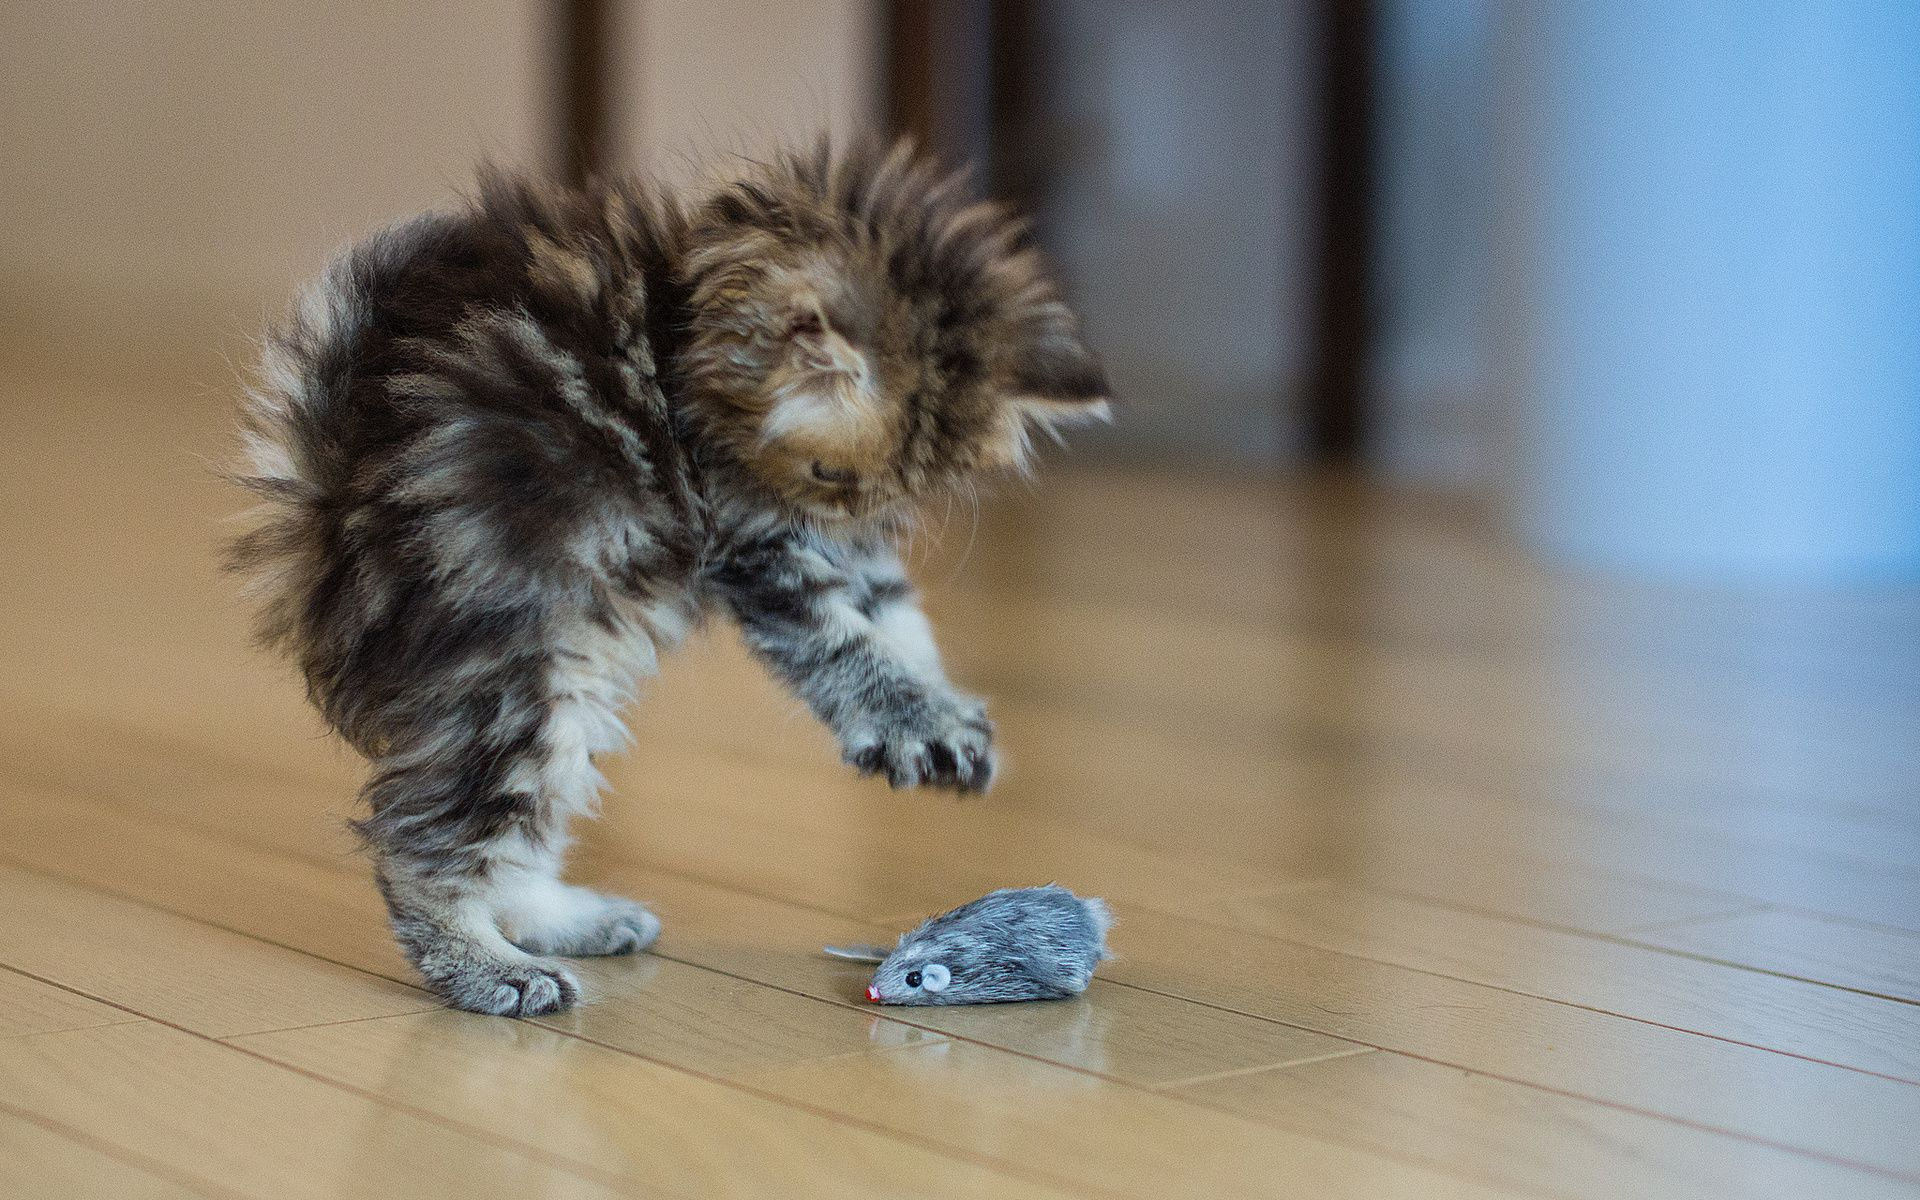 Pin By Conner5ive On Feisty Felines Kittens Cutest Cute Animals Crazy Cats